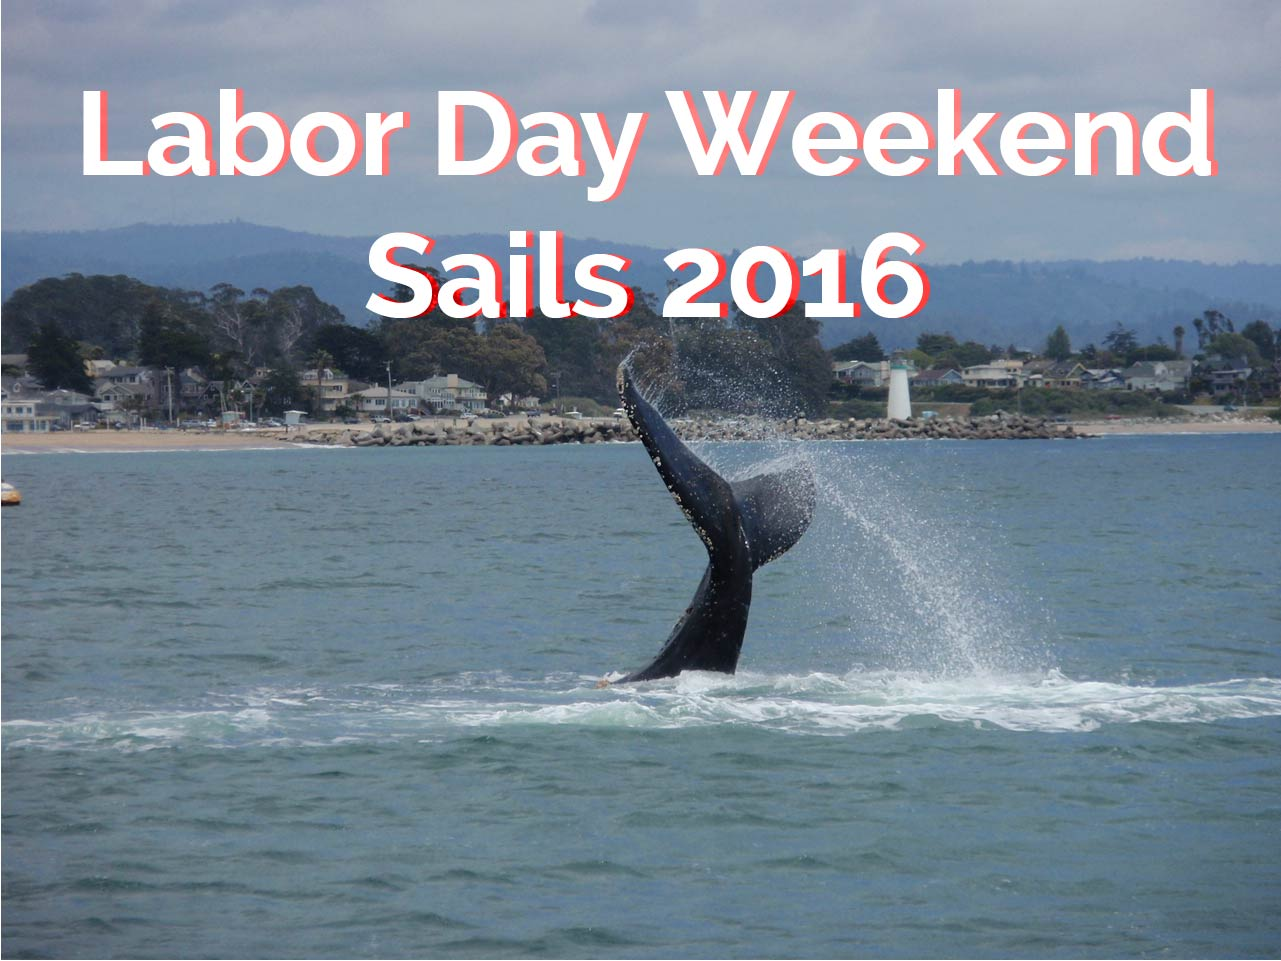 Labor Day Weekend 2016 Sails